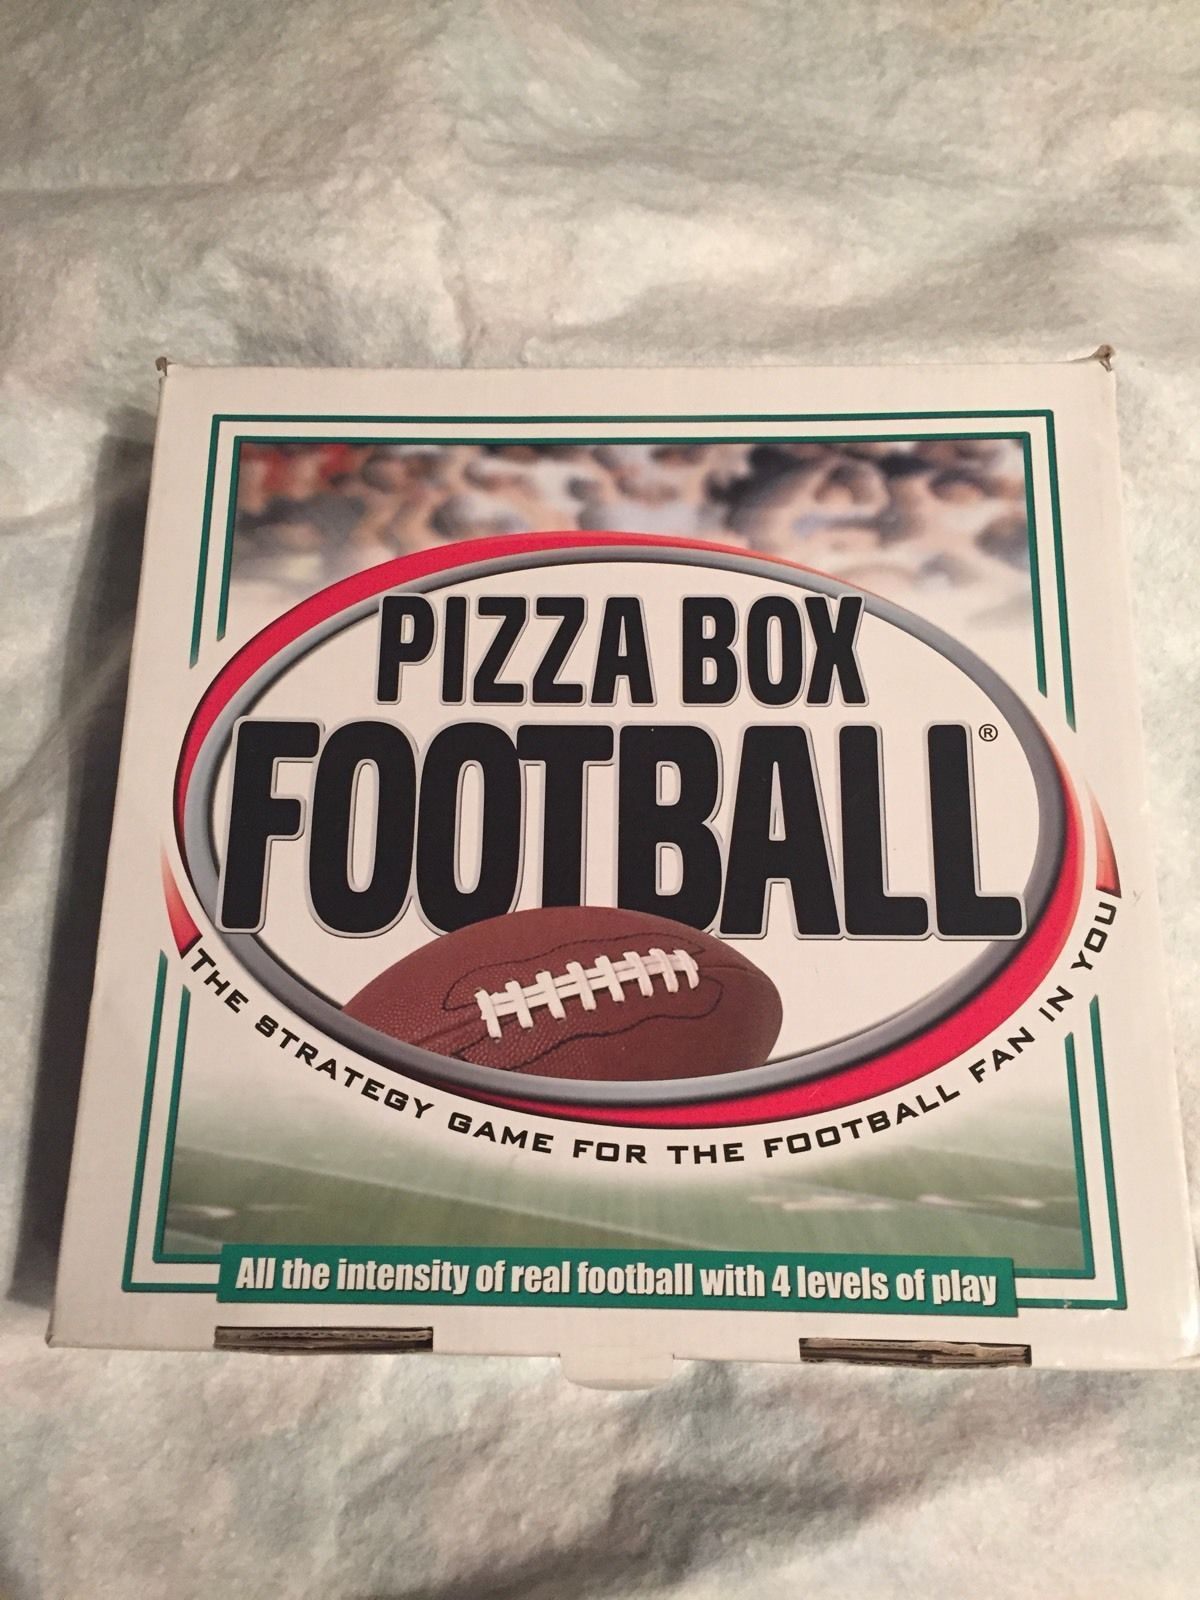 Pizza Box Football Strategy Game for the Football Fan 4 Levels of Play Complete - $17.34